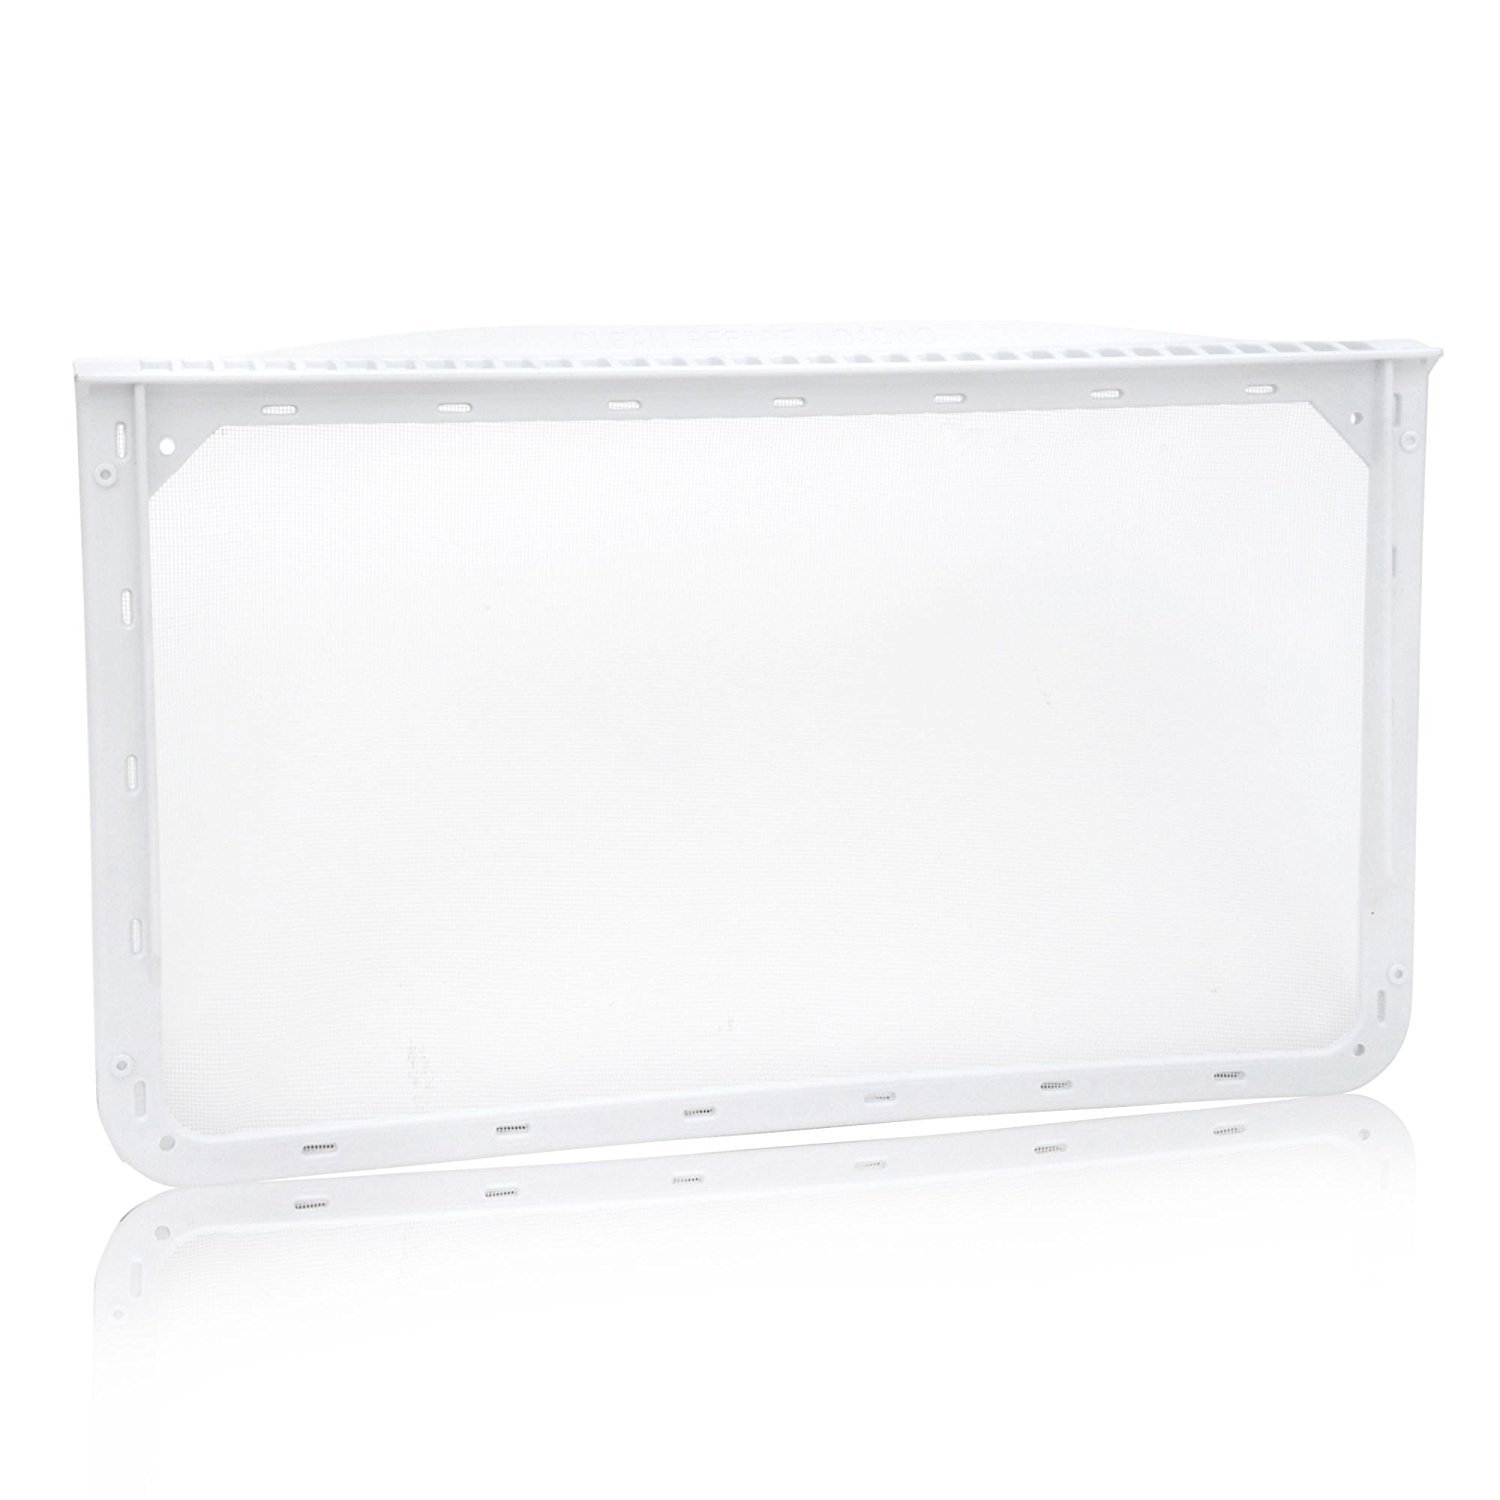 Artisan1 Dryer Lint Filter Screen 33001808-AF replacement for Maytag 33001808, Whirlpool WP33001808, AH2035632, DE534, Kenmore, Norge, Admiral, Crosley and more.